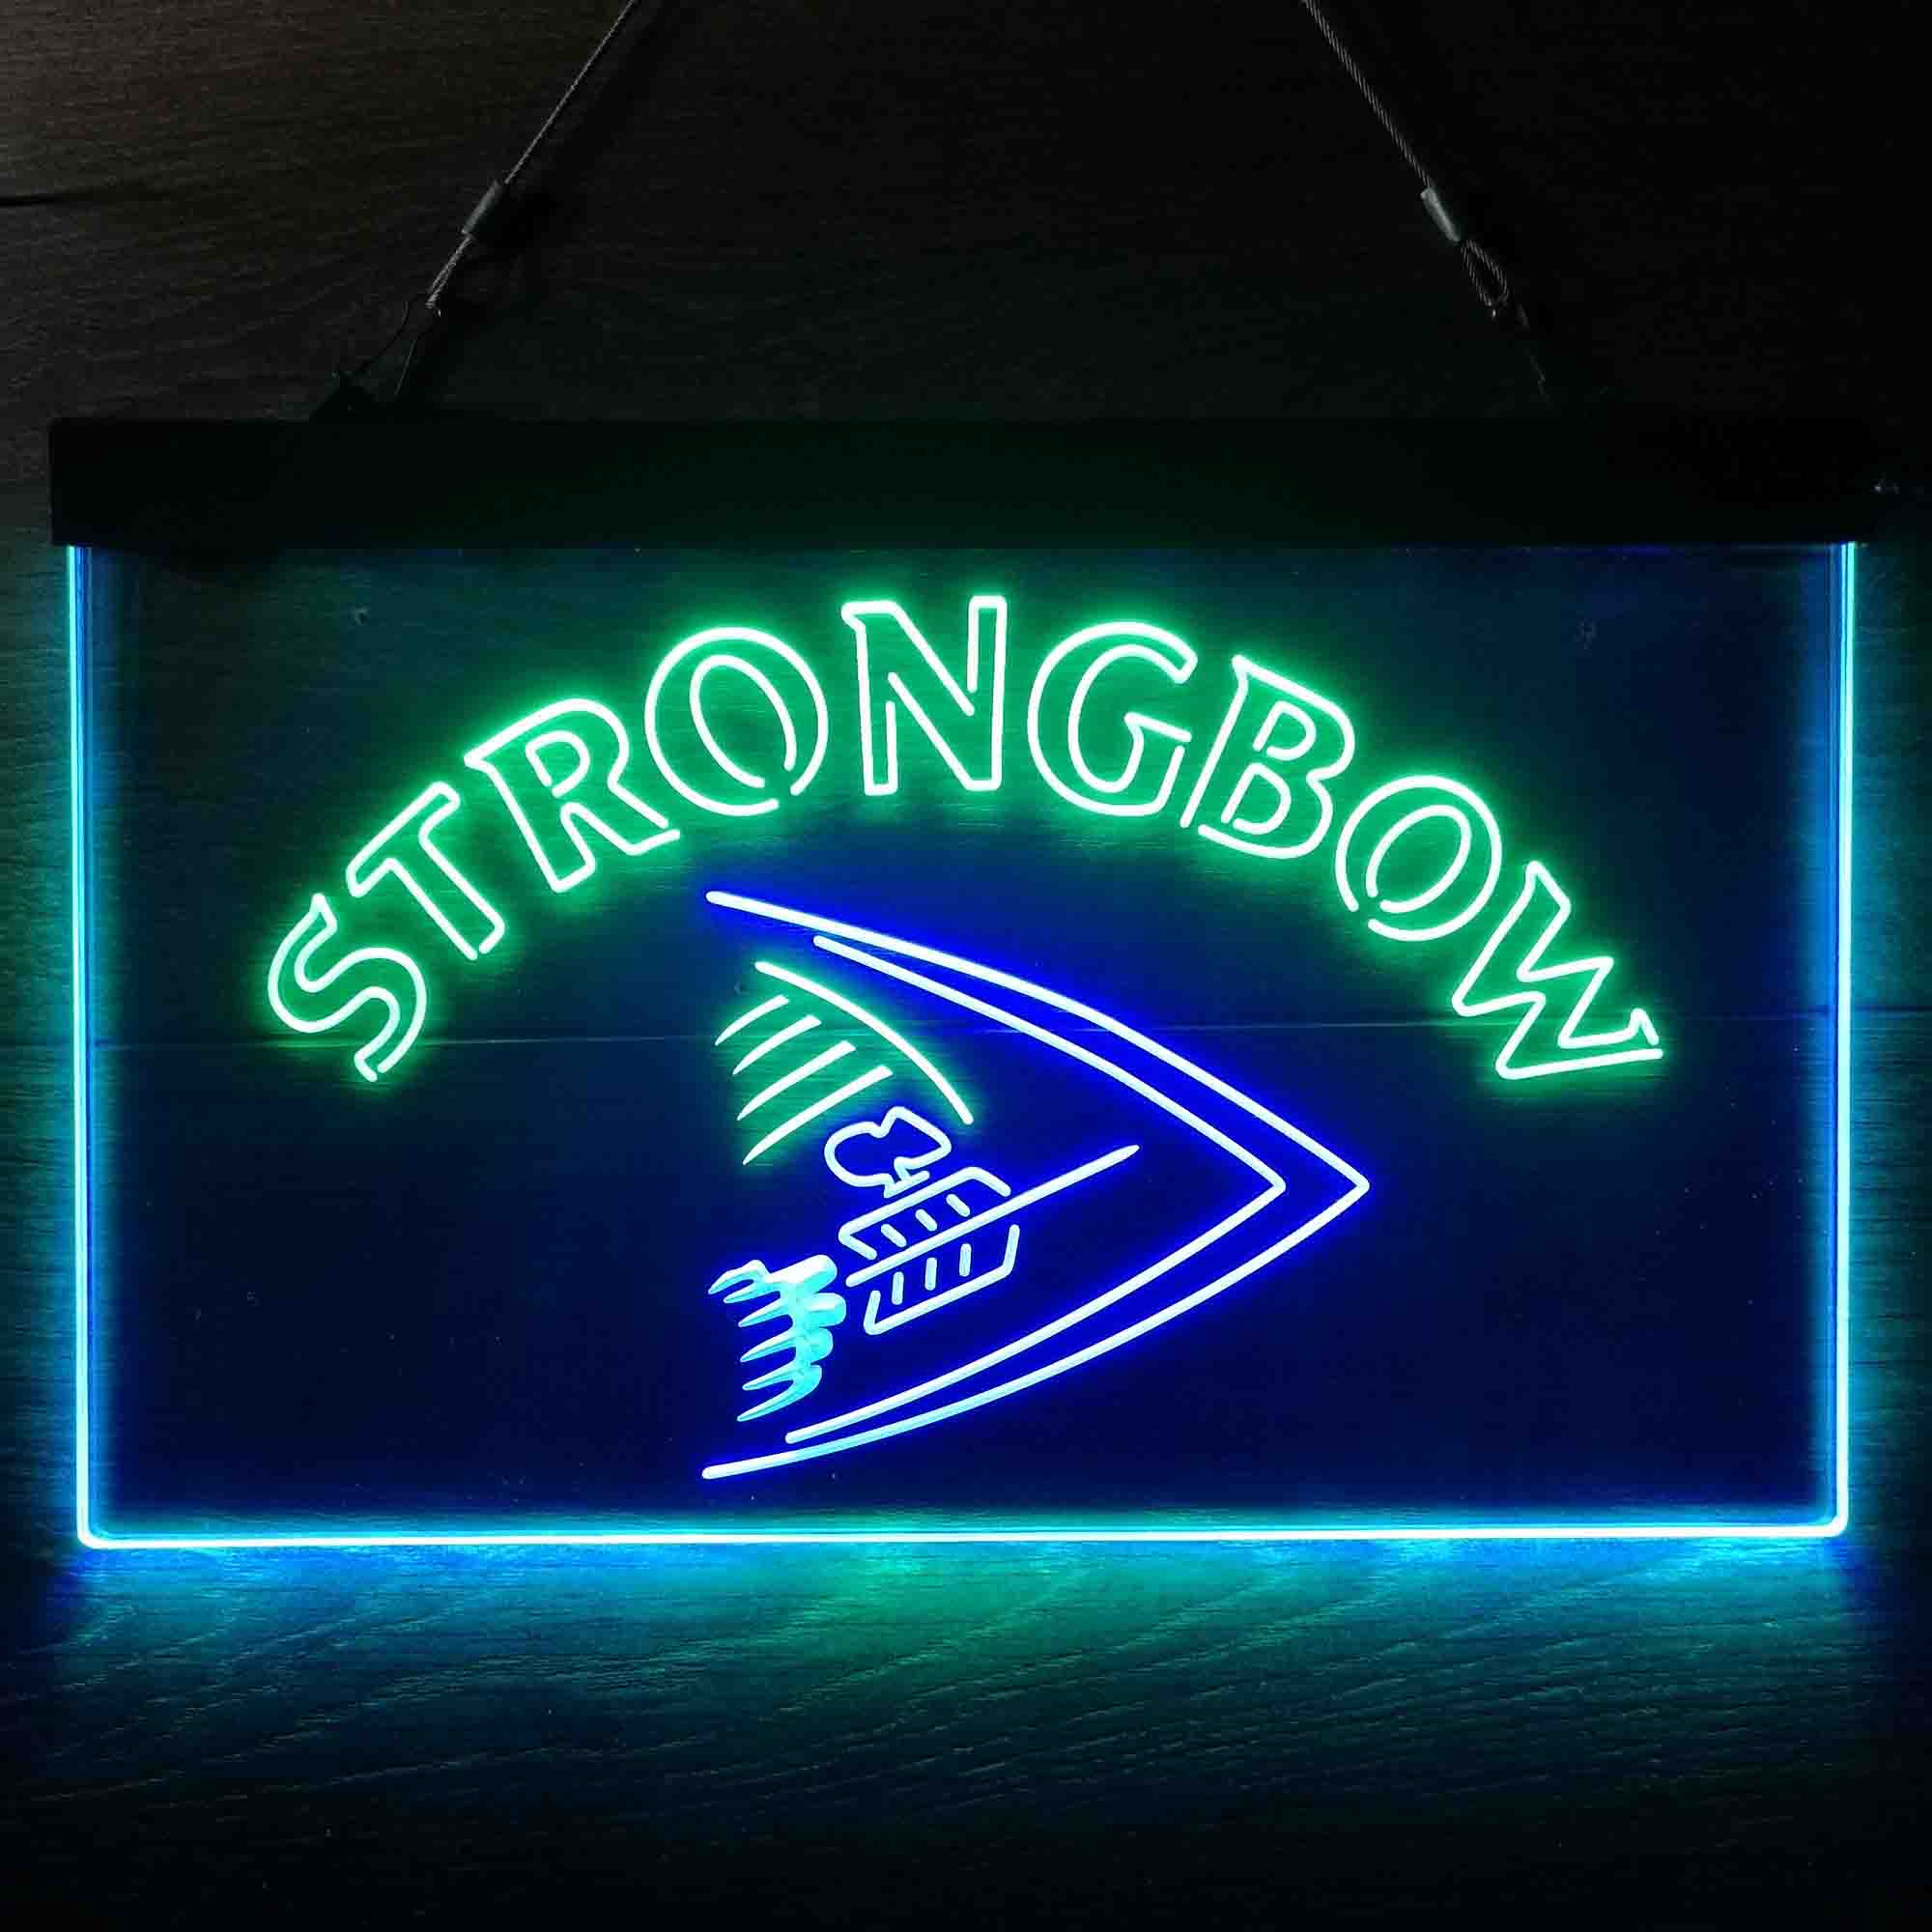 Strongbow Classic Beer Neon-Like LED Sign